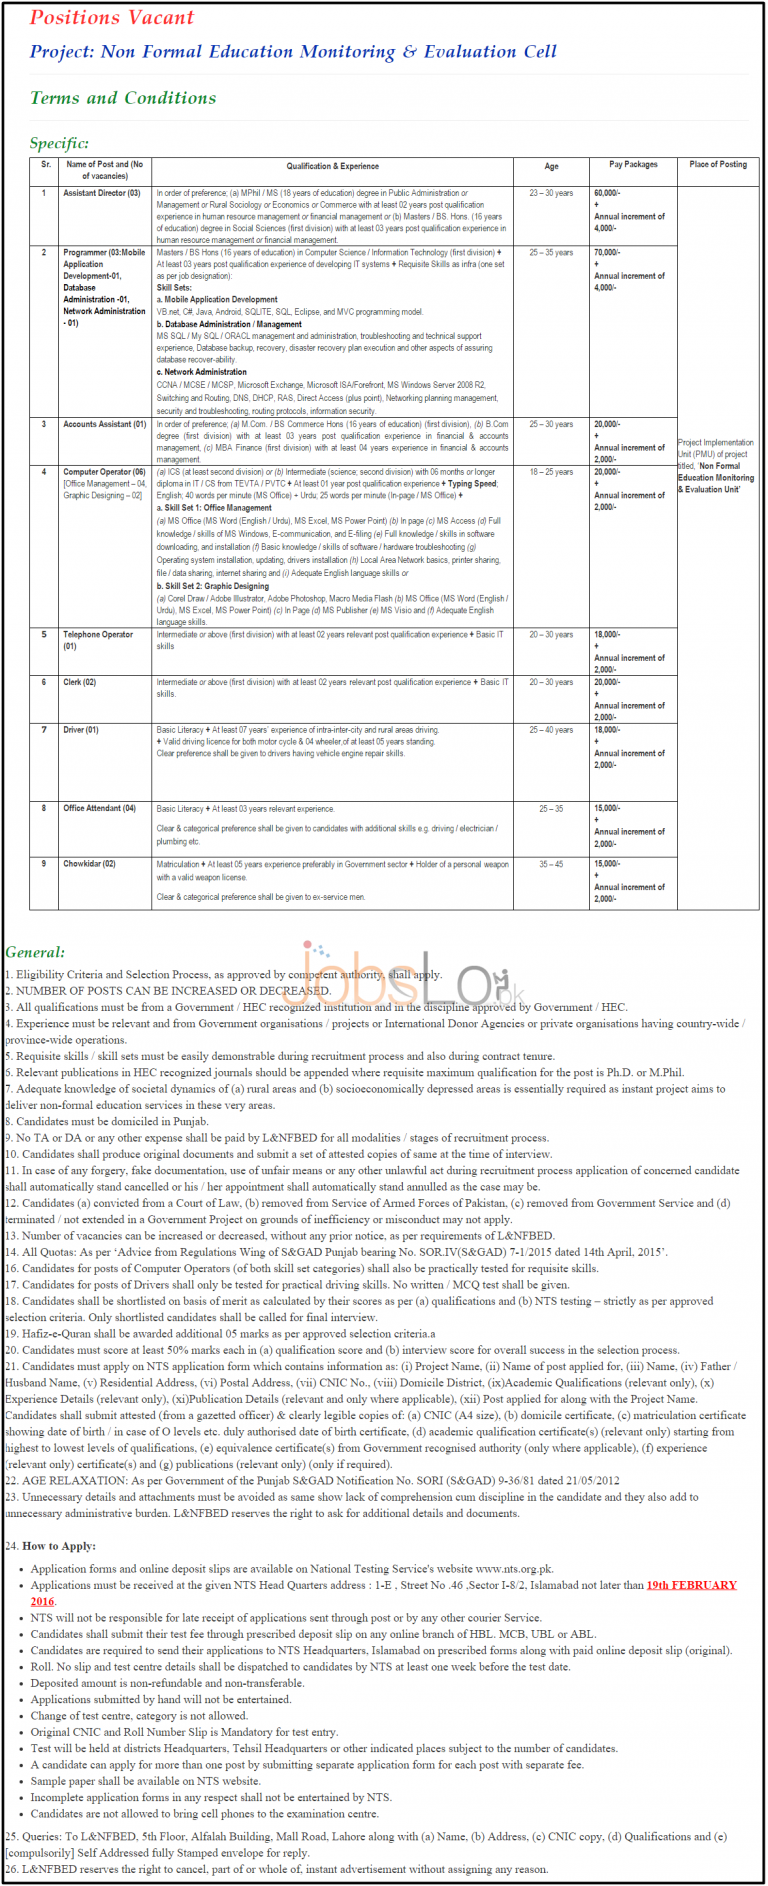 NTS Literacy Department Government of Punjab Jobs 2016 February Latest Advertisement